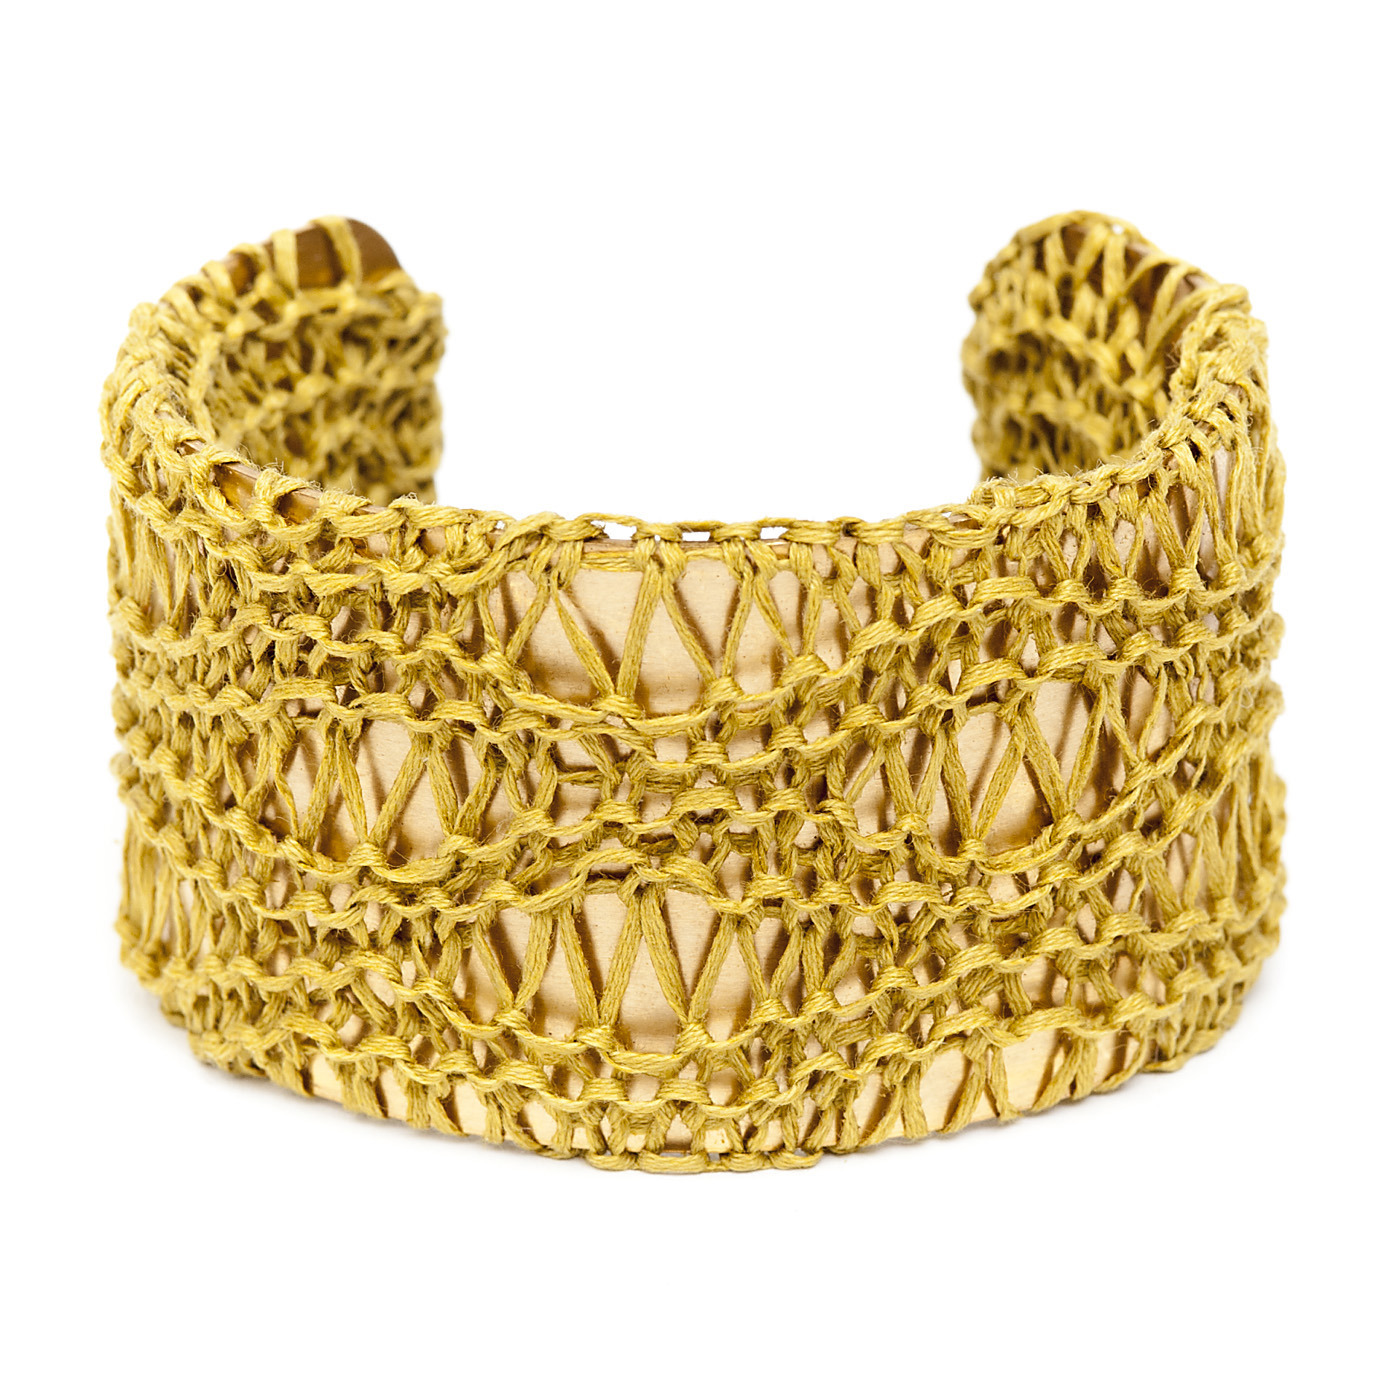 Artisan, Eco-Friendly, Designer Trellis Cuff